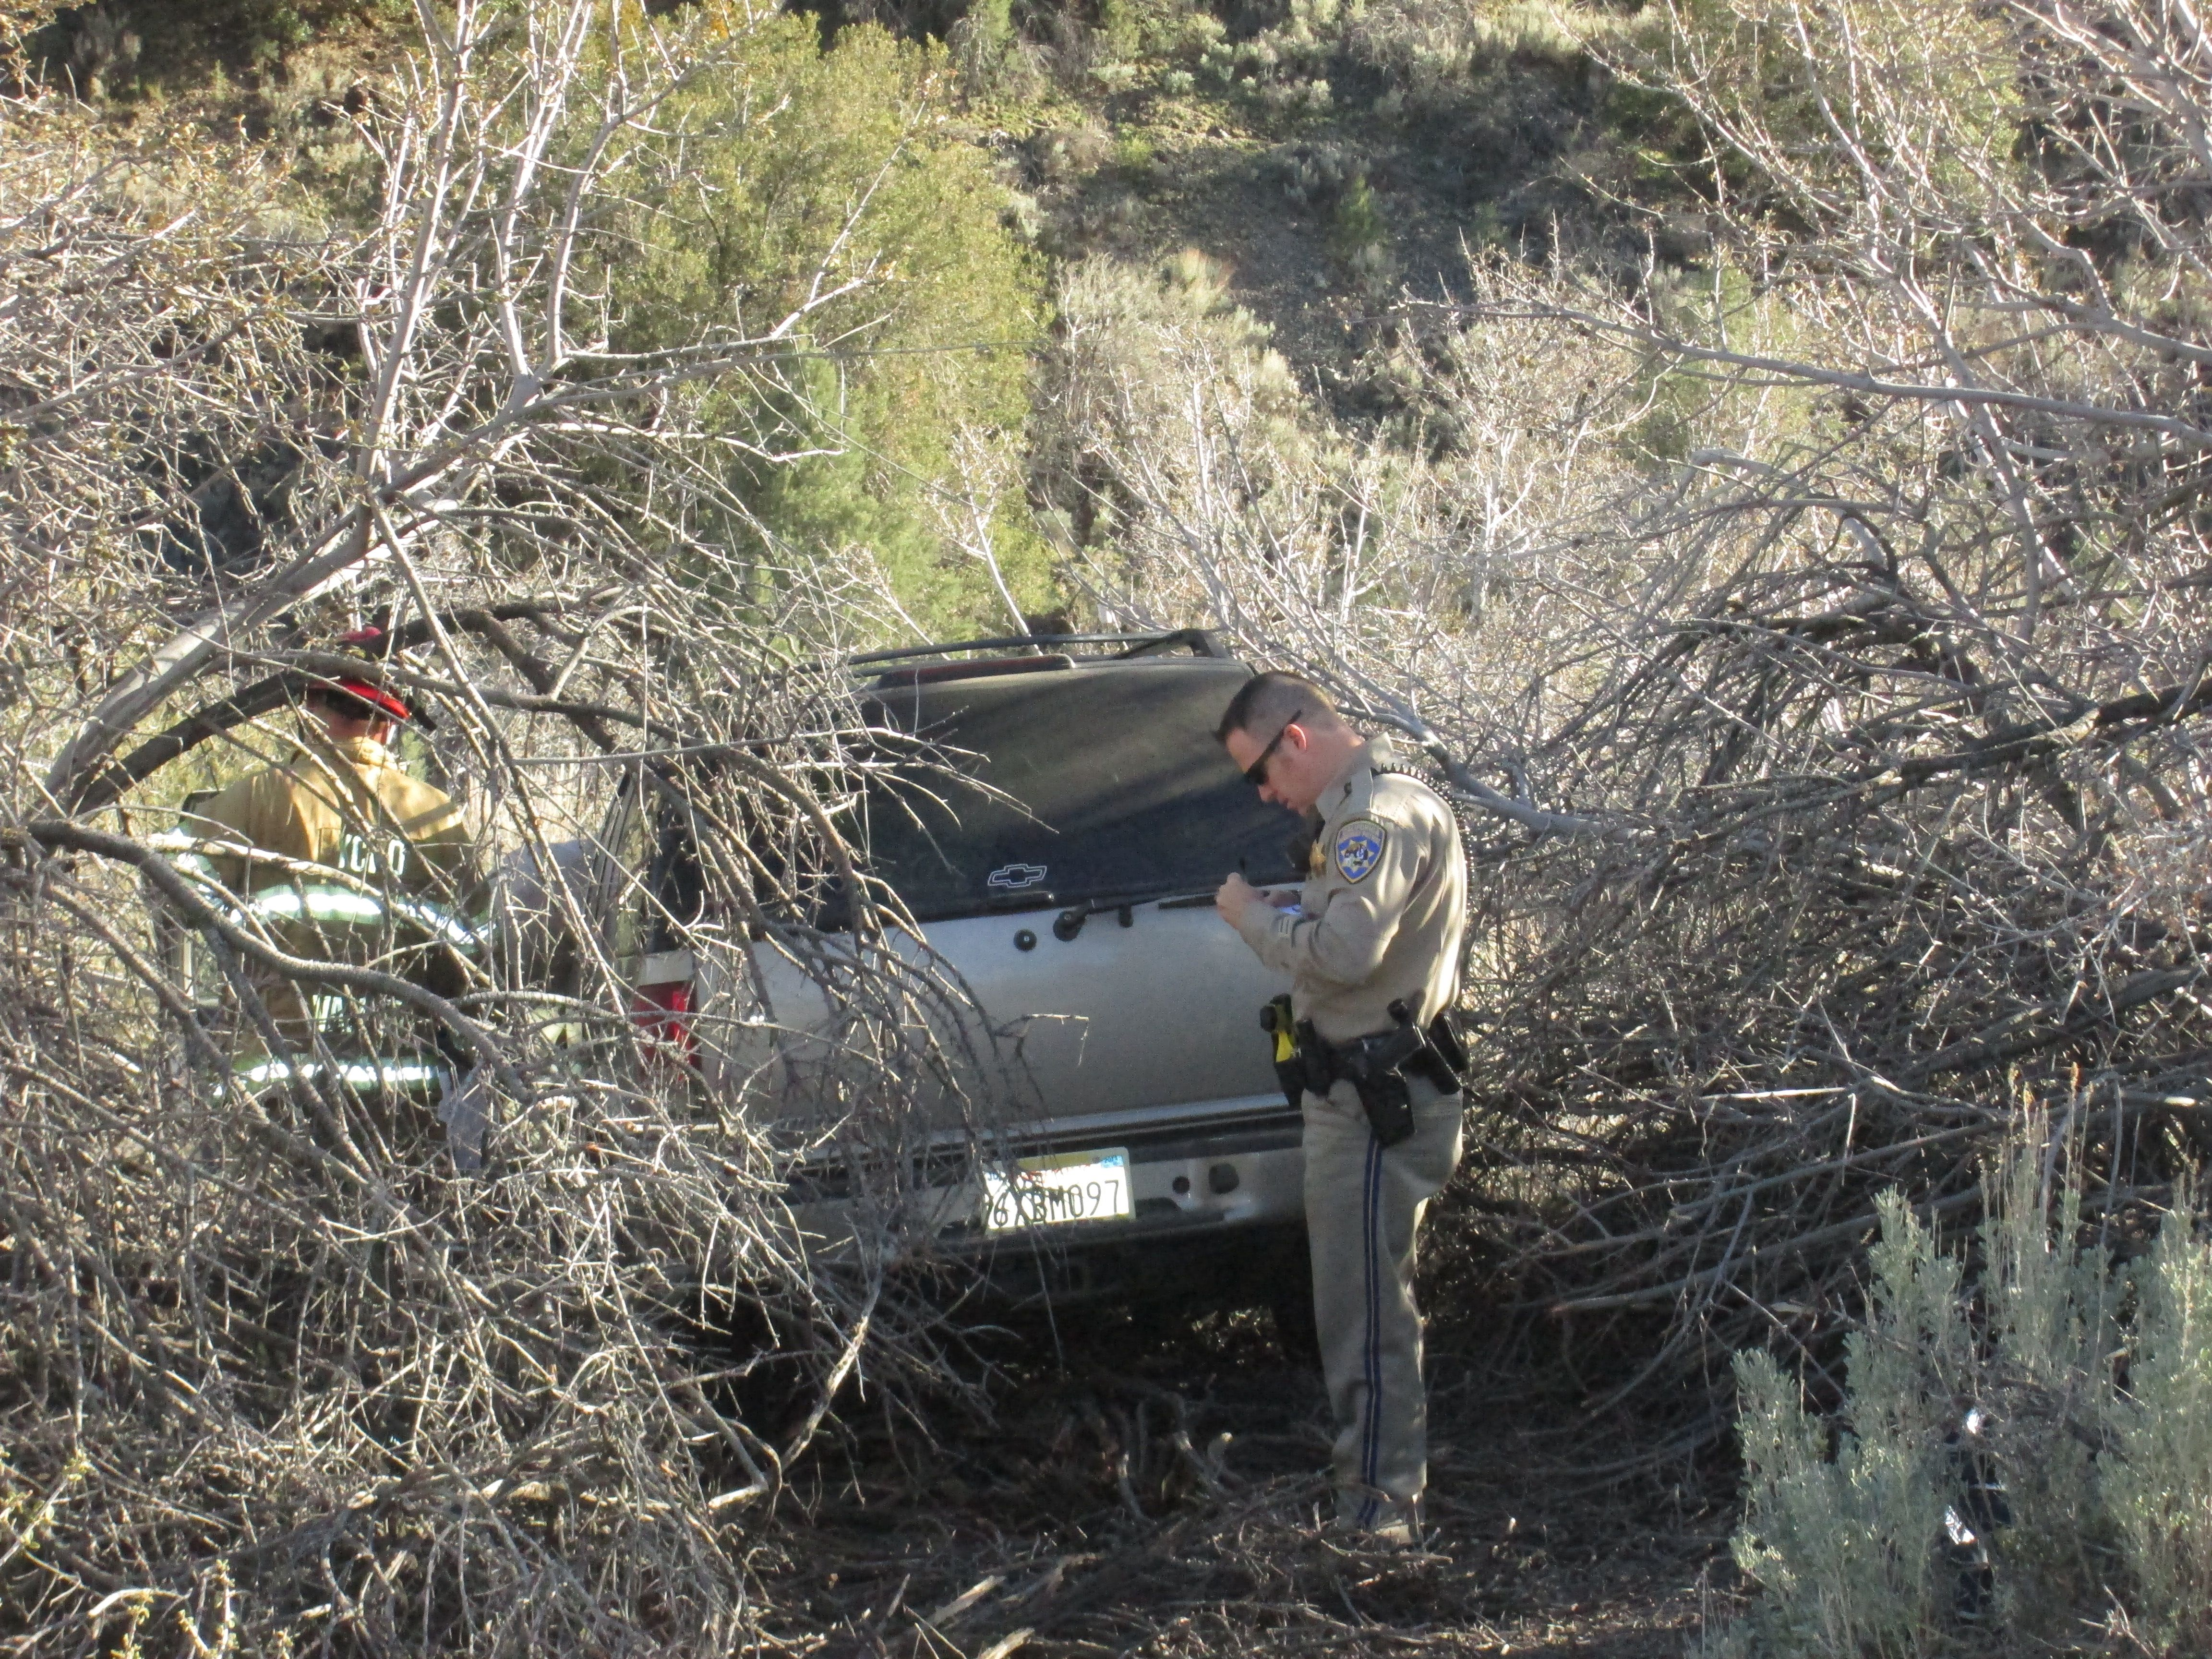 The silver Chevy SUV came to rest in vegetation on the creek side of the hill. It did not appear to have rolled over. The driver was extracted from the car and put on a stretcher. [Gary Meyer photo]